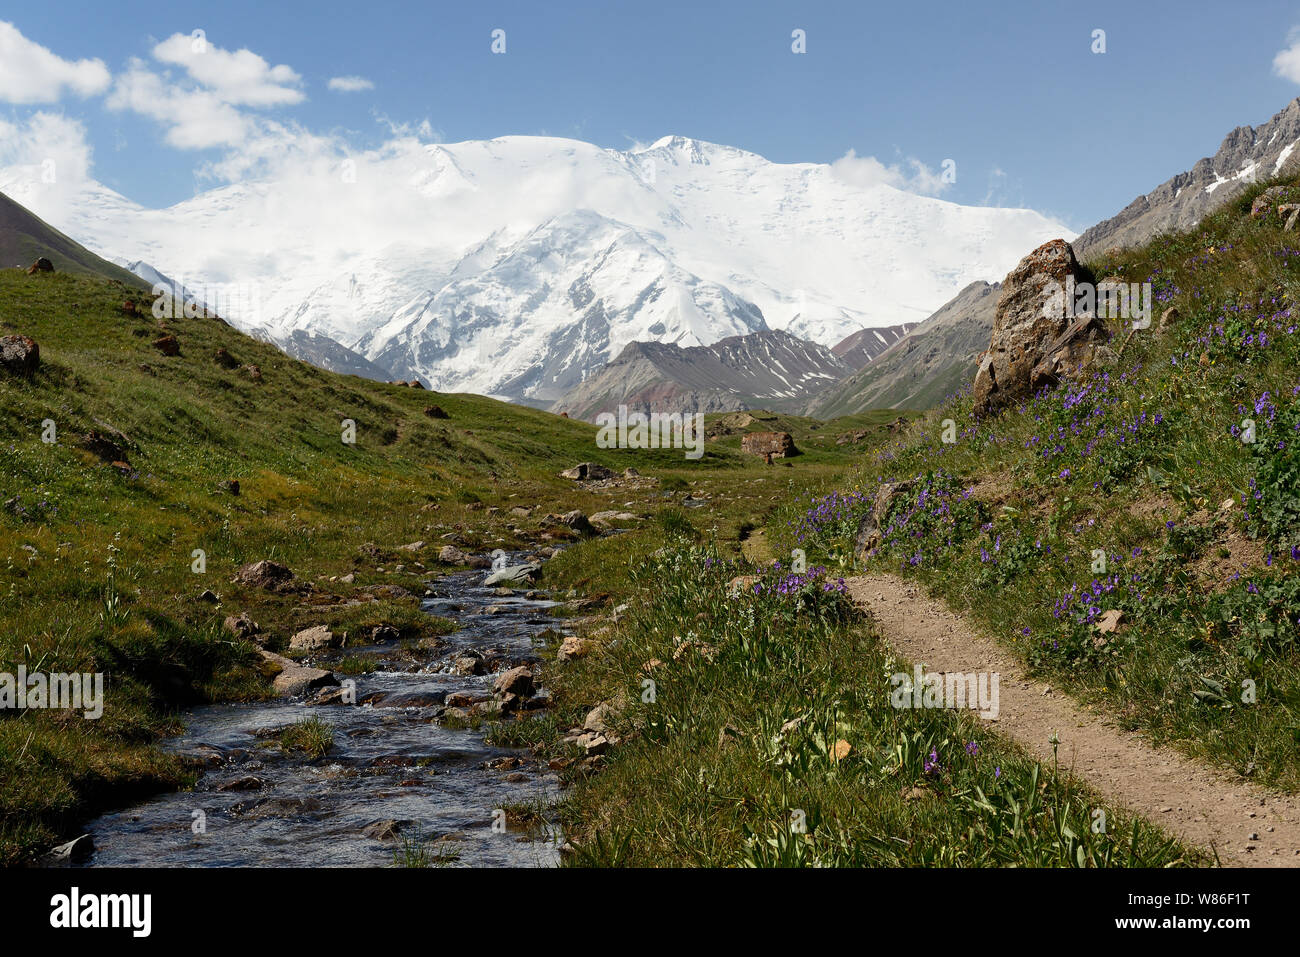 The beautiful Pamir mountains, trekking destination. View on the Lenin Peak, Kyrgyzstan, Central Asia. Stock Photo